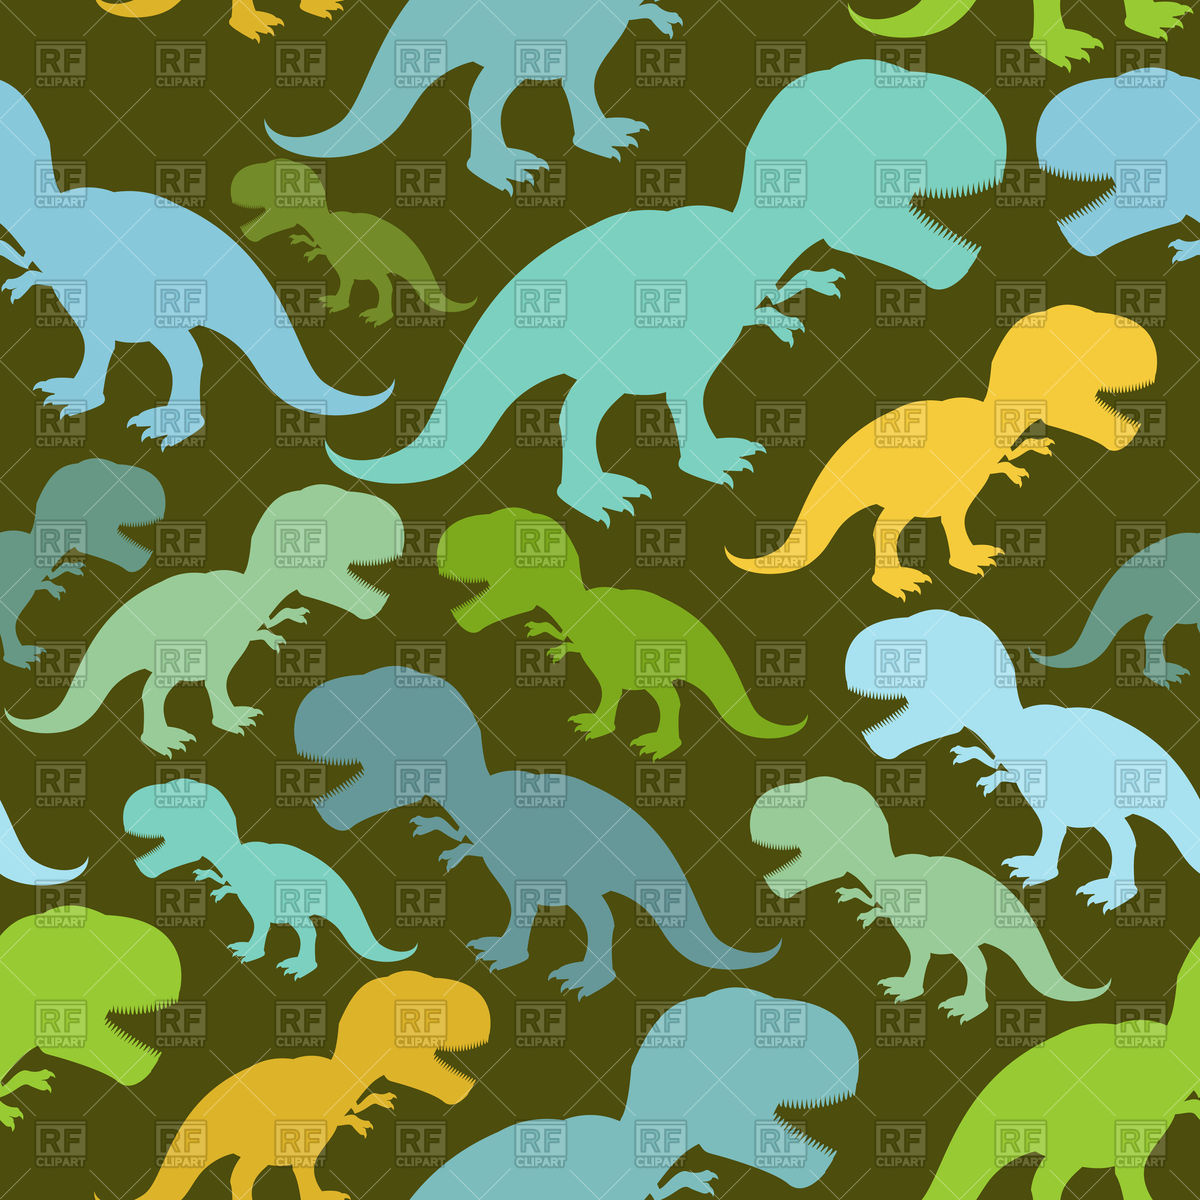 Seamless pattern with green silhouette of dinosaur Vector Image.